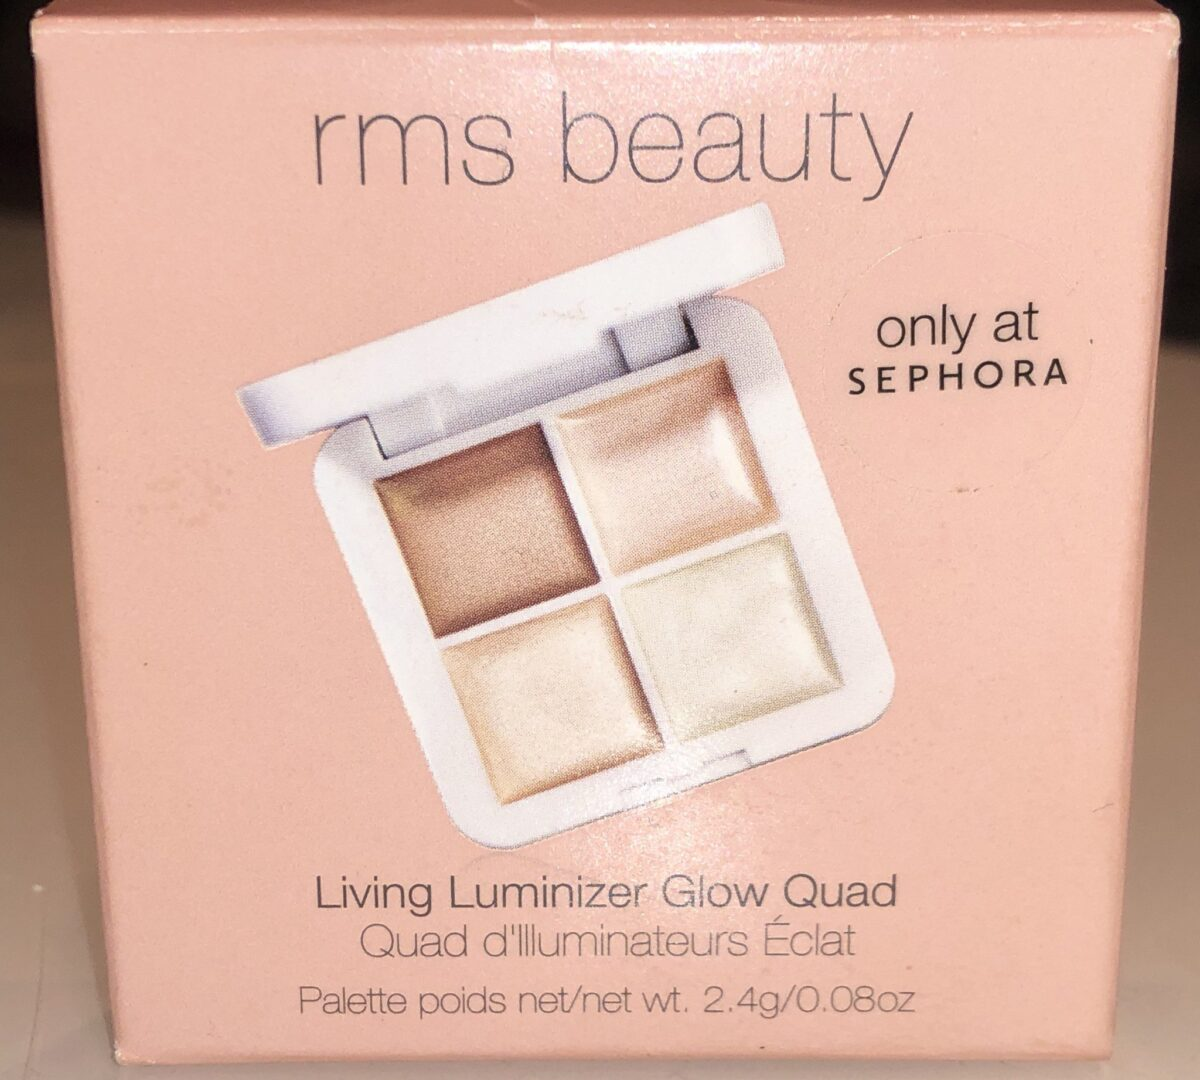 THE FRONT OF THE RMS LIVING LUMINIZER GLOW QUAD MINI